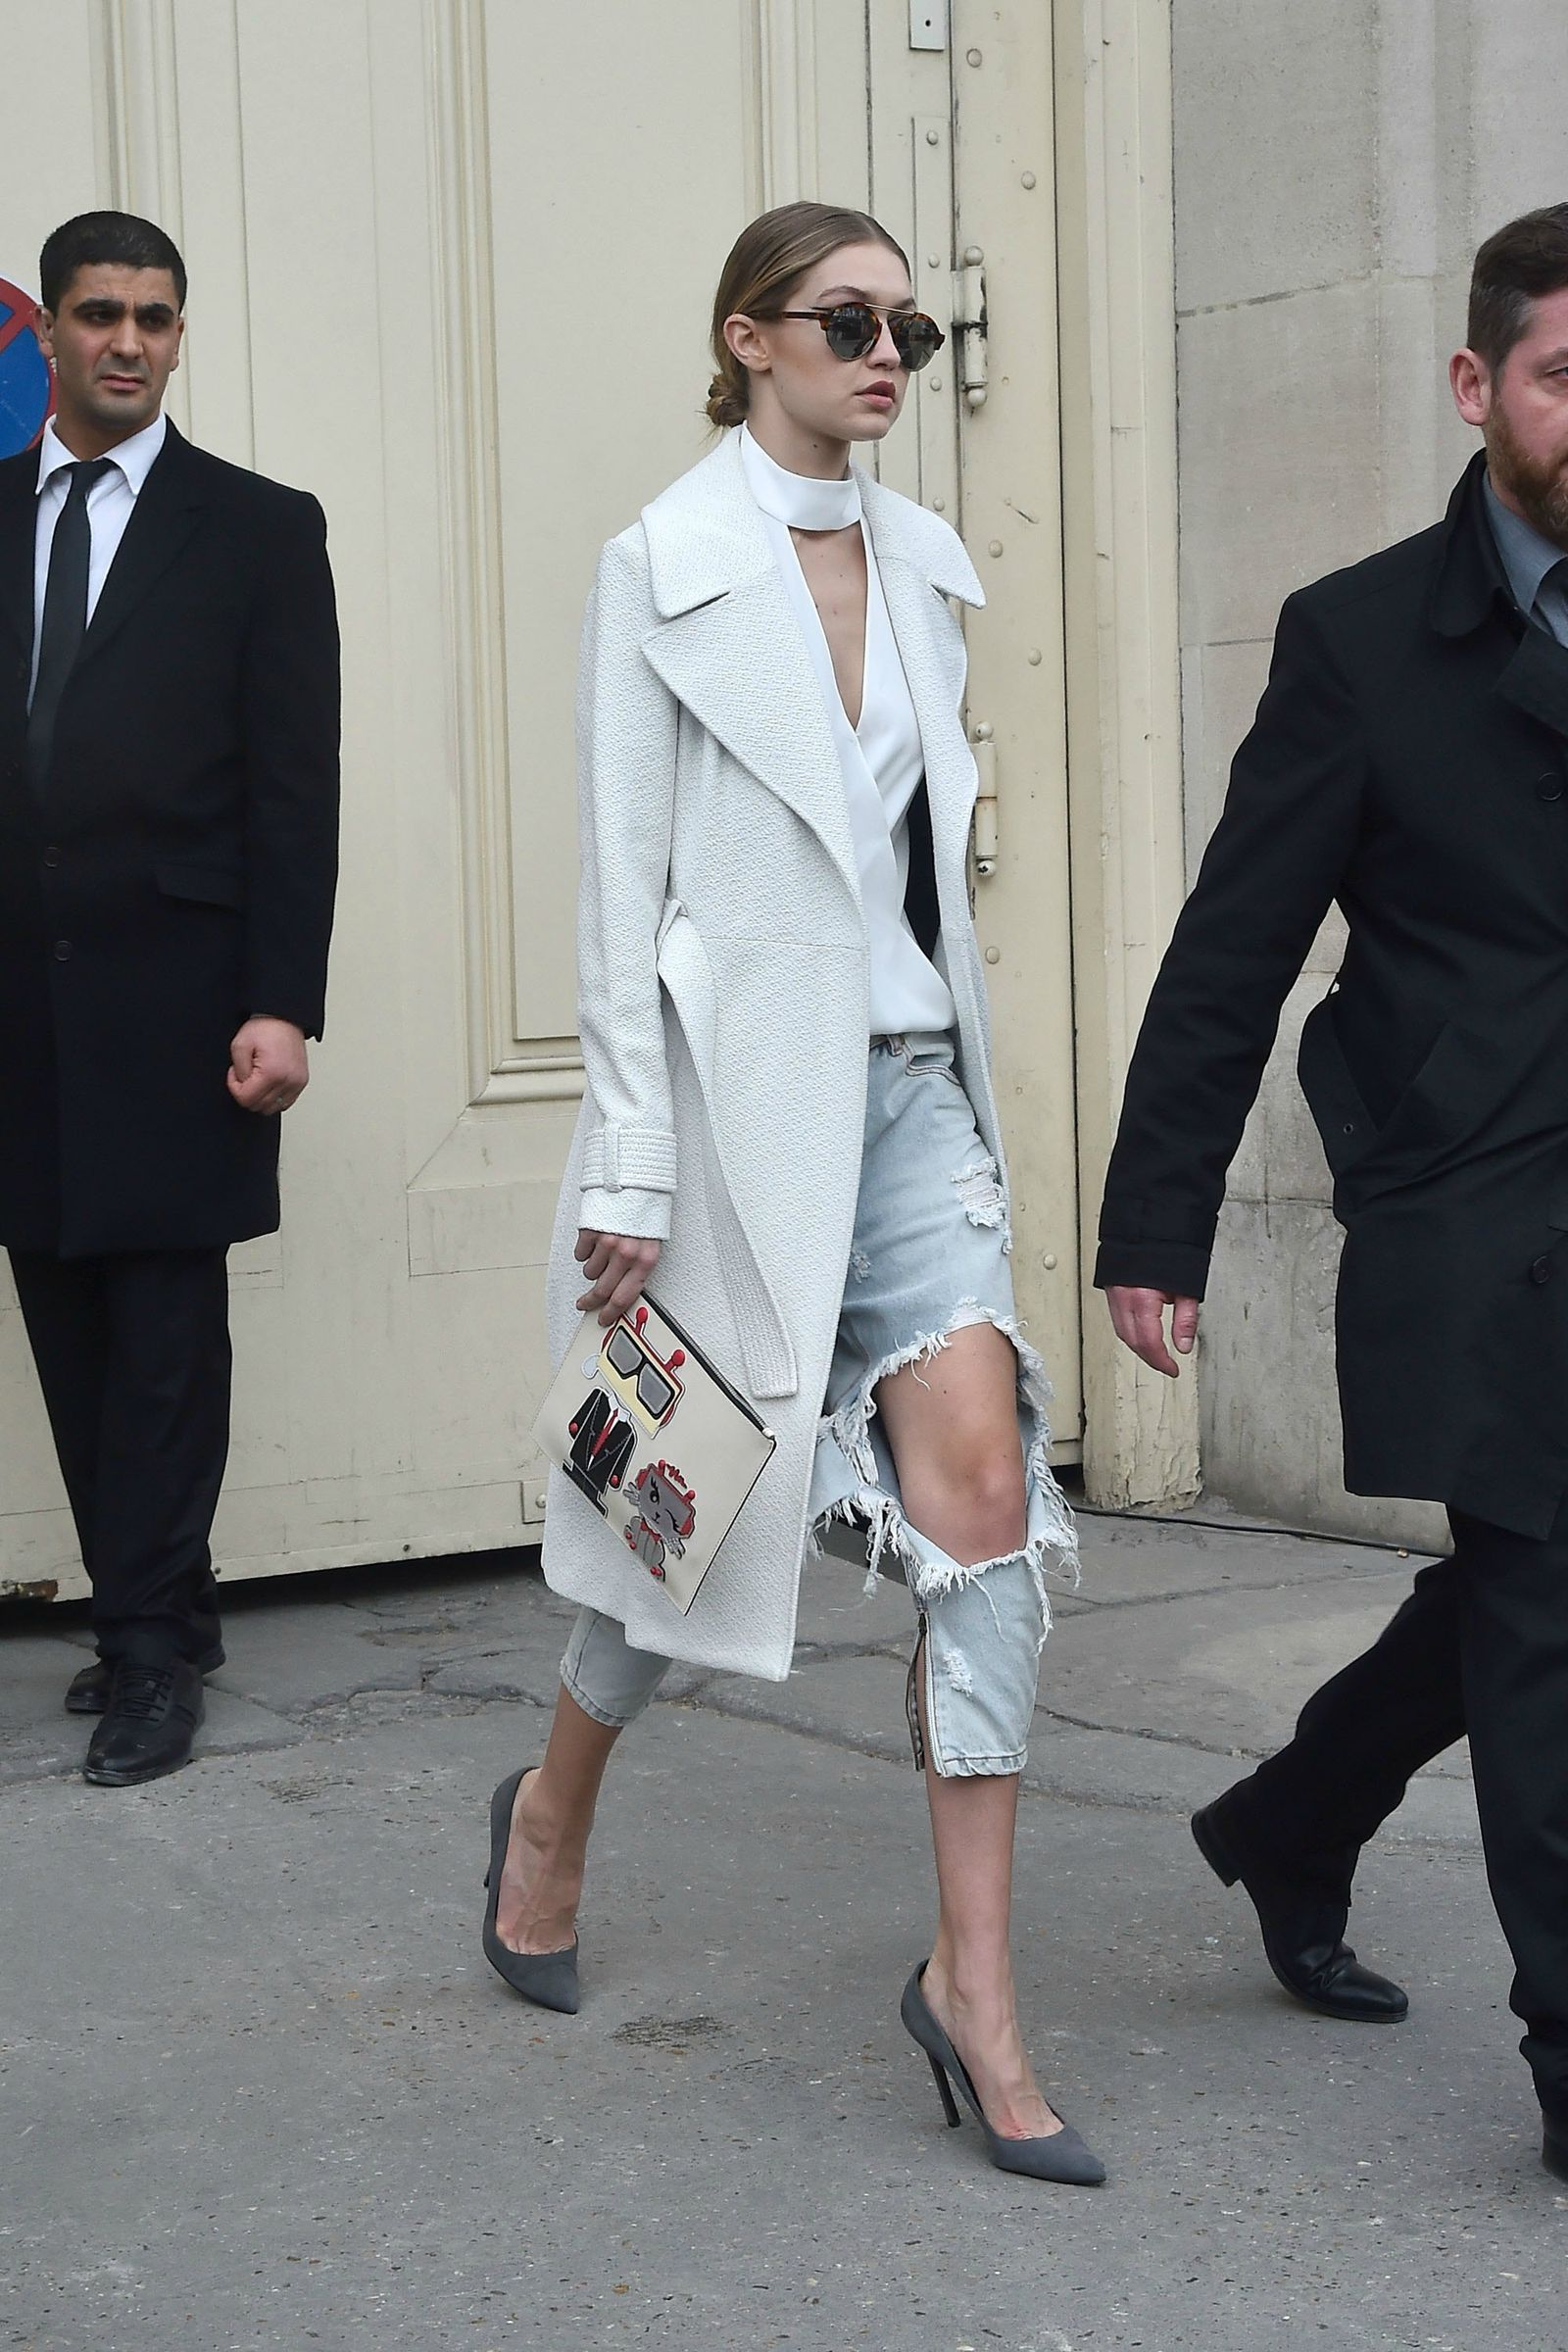 Gigi Hadids best street style moments to inspire your own wardrobe